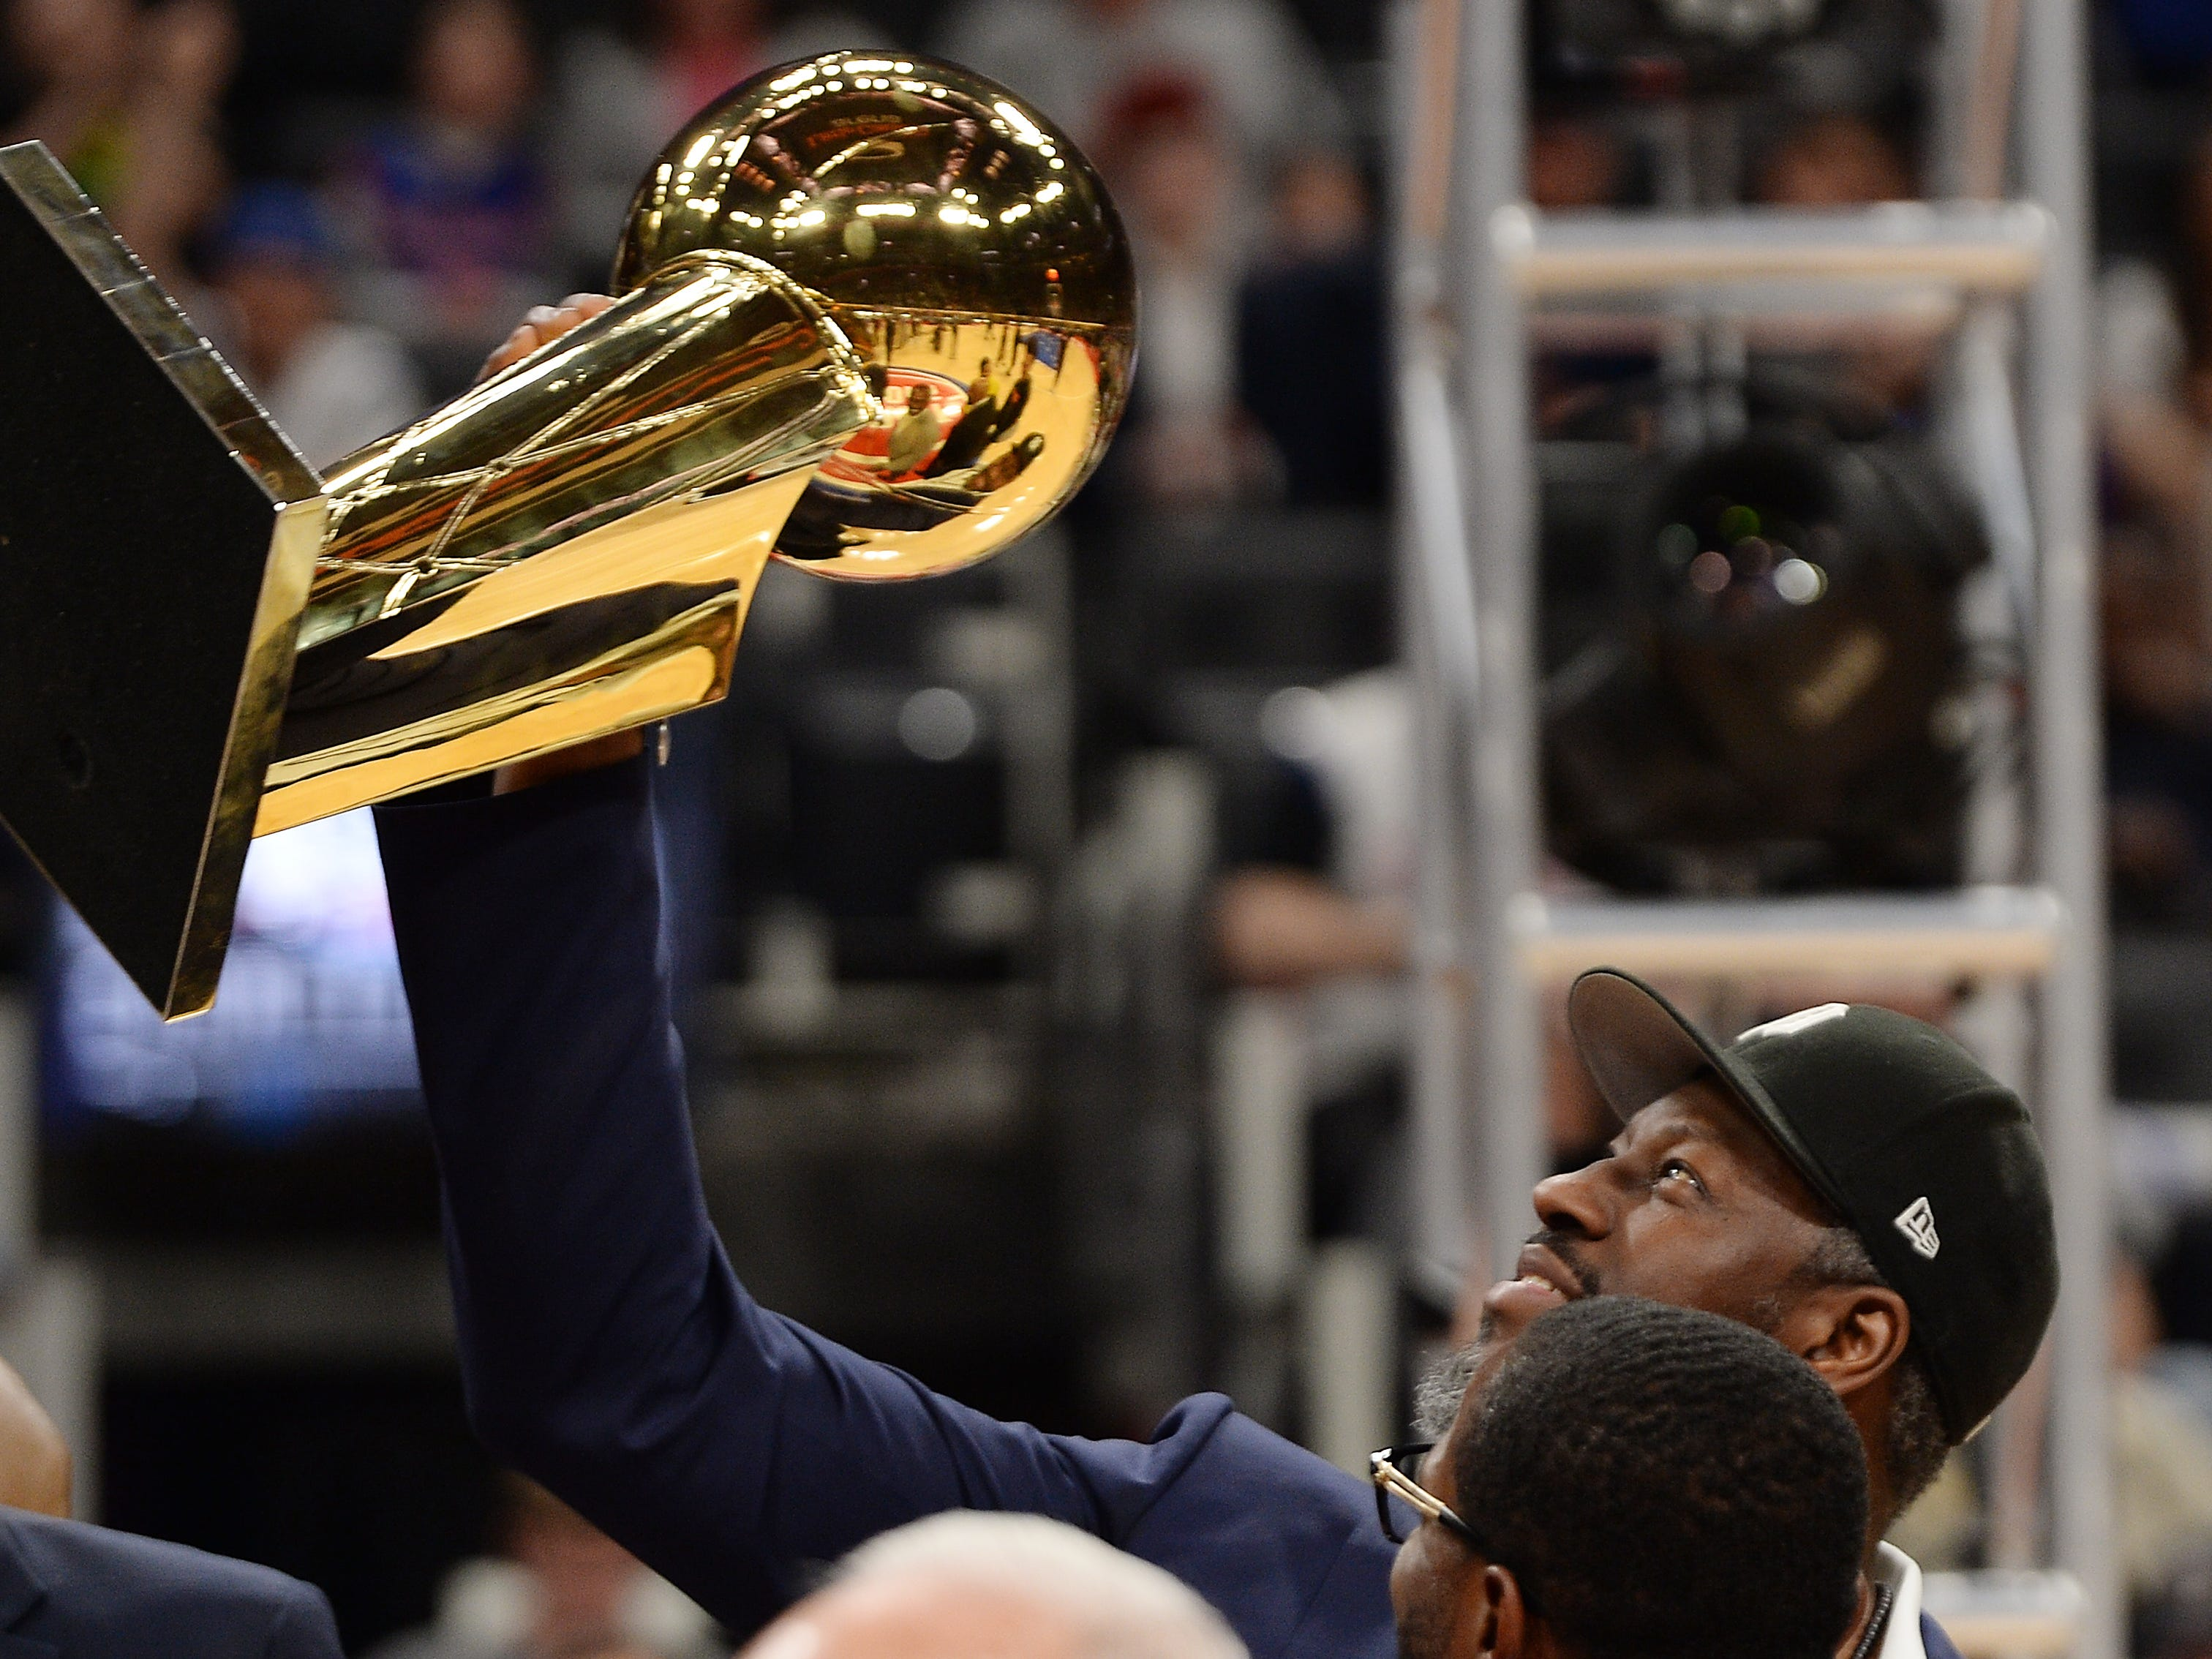 Former Piston Ben Wallace holds the 2004 Championship trophy at the end of the ceremony honoring the 2004 Champs.